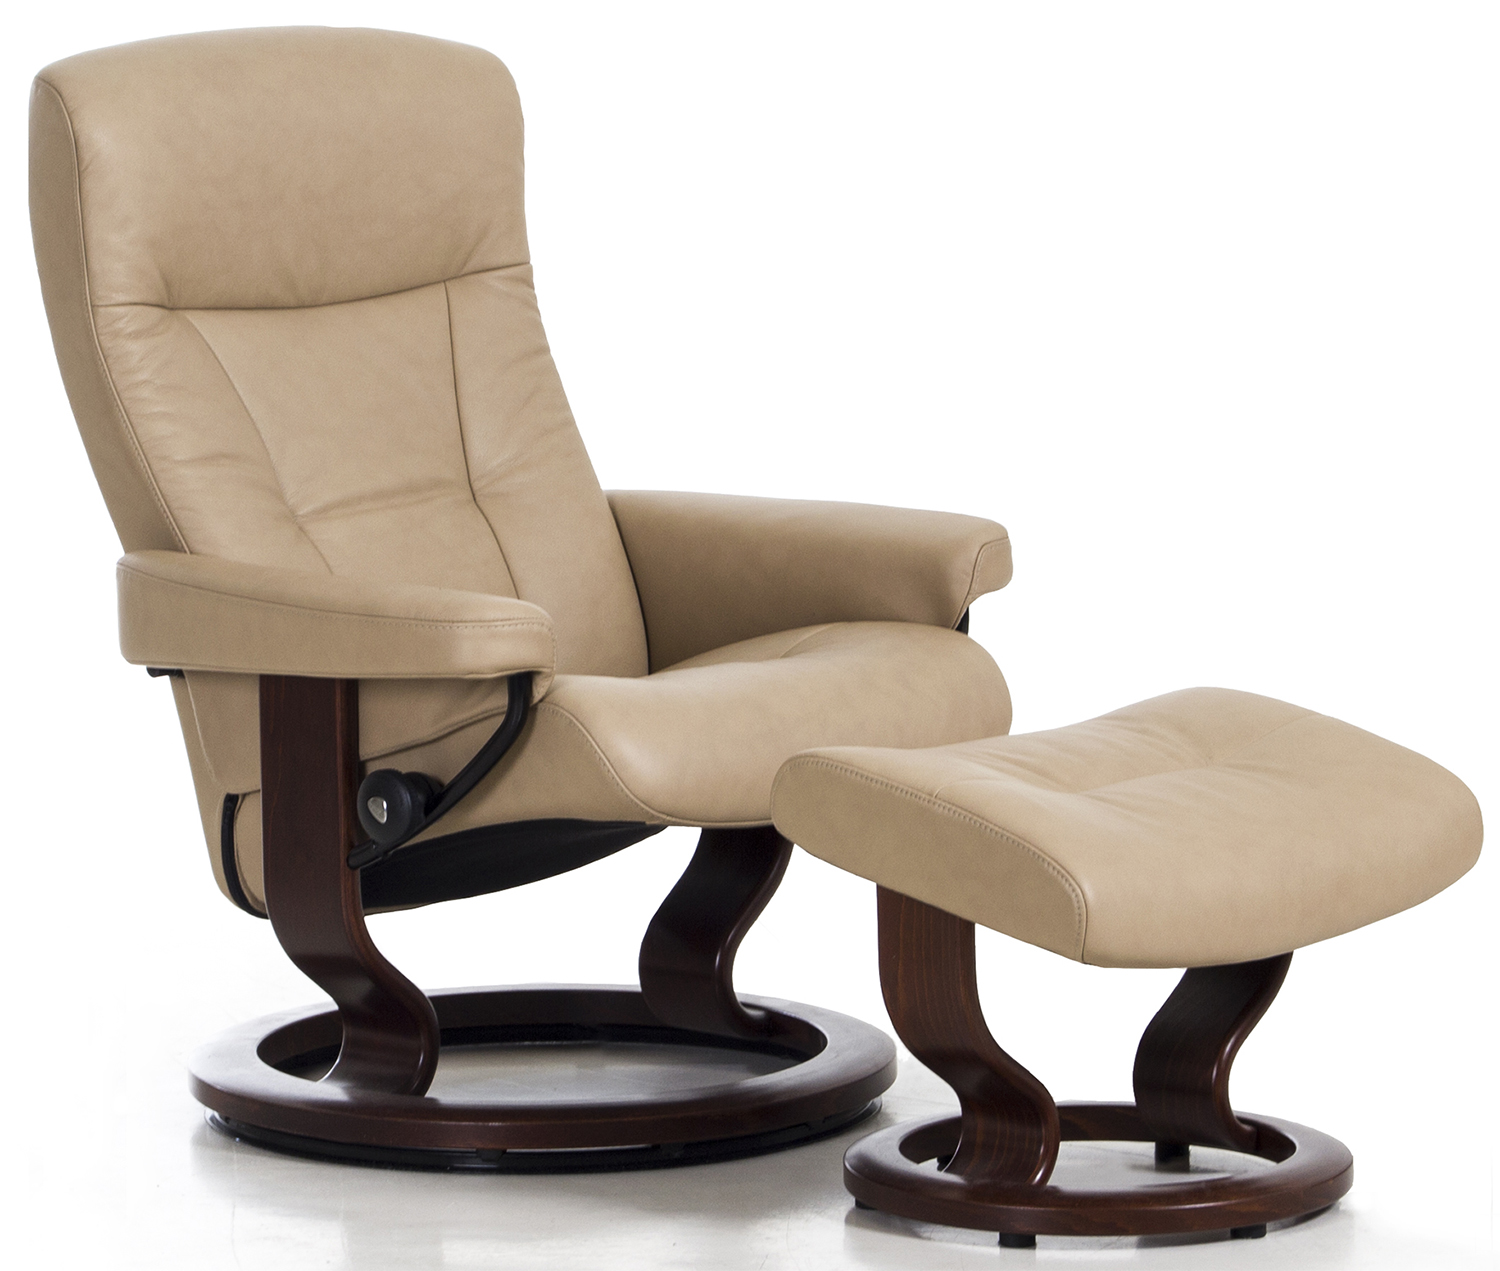 Sressless Stressless President Recliner Classic Wood Base Chair And Ottoman